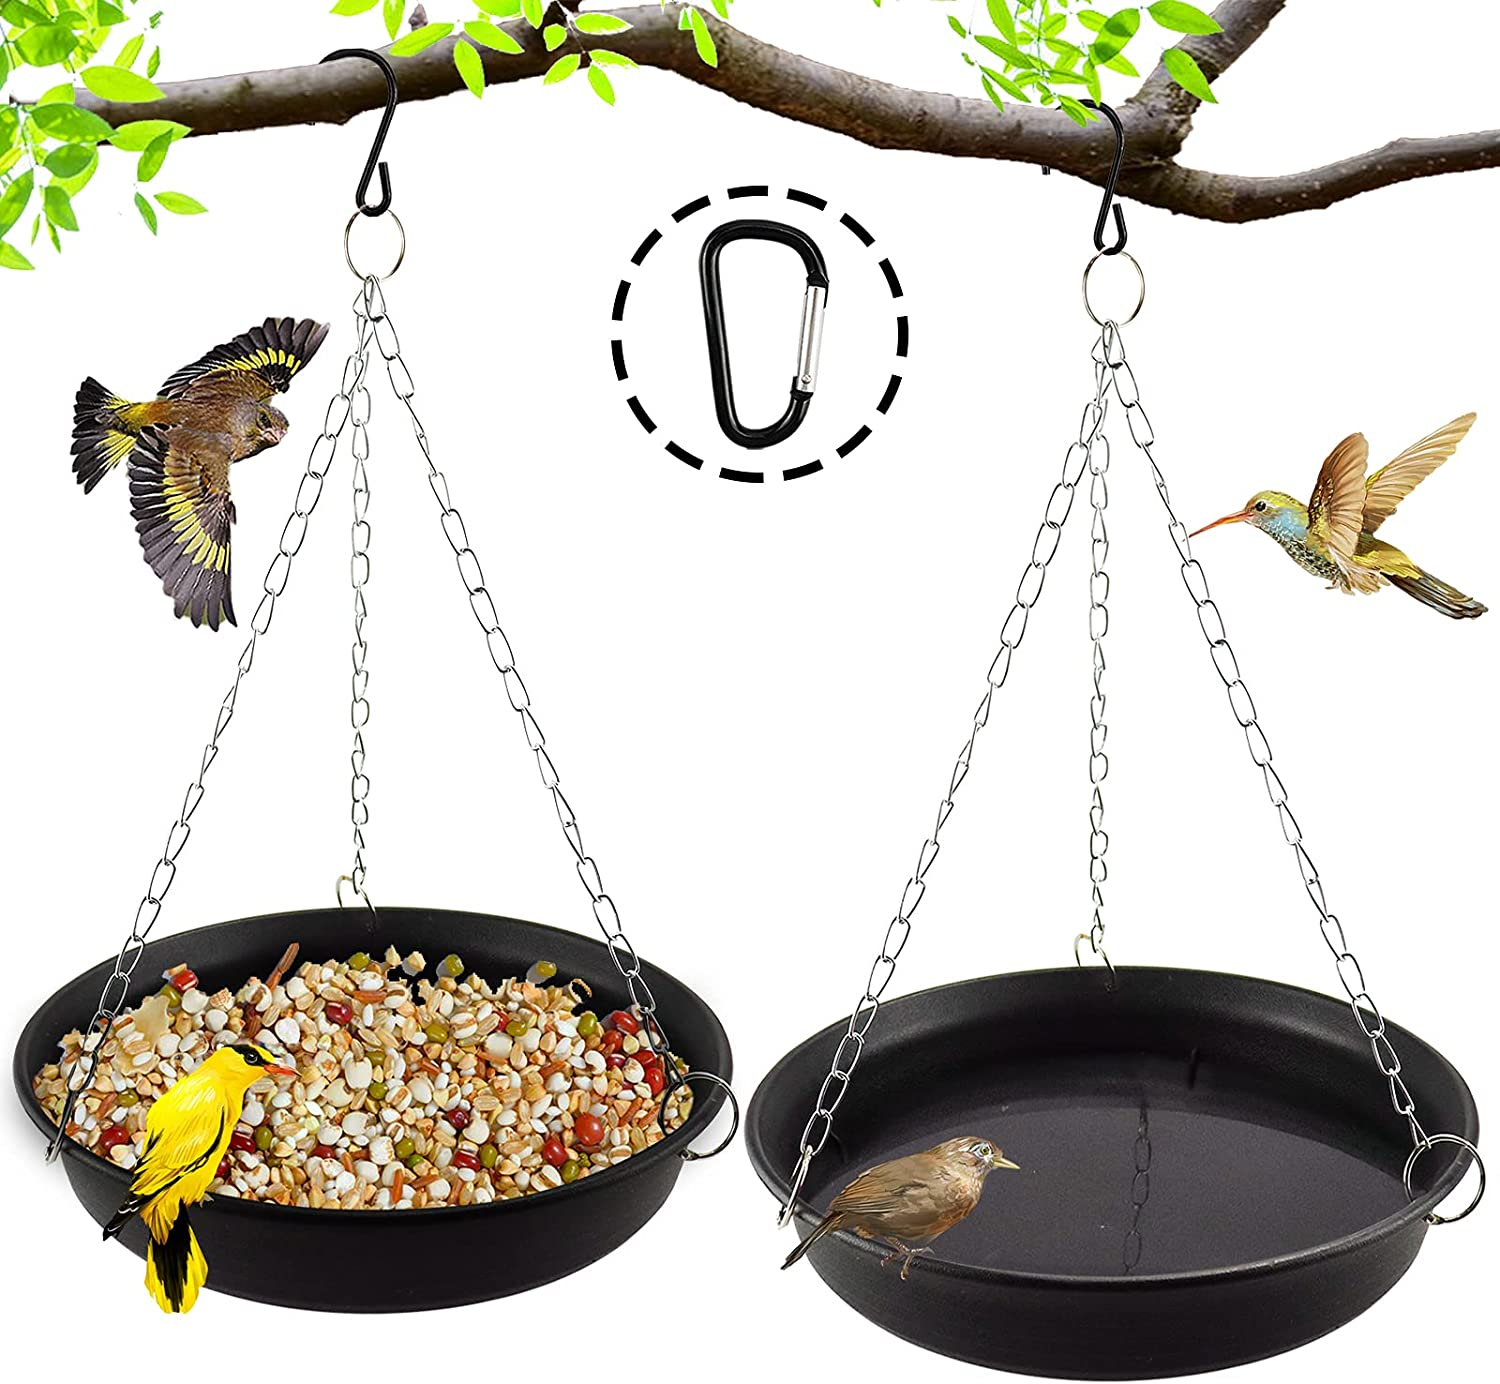 Miwasion 11 Inch Hanging New Shipping Free Shipping Sale item Bird for Bath w Outdoors Bowl